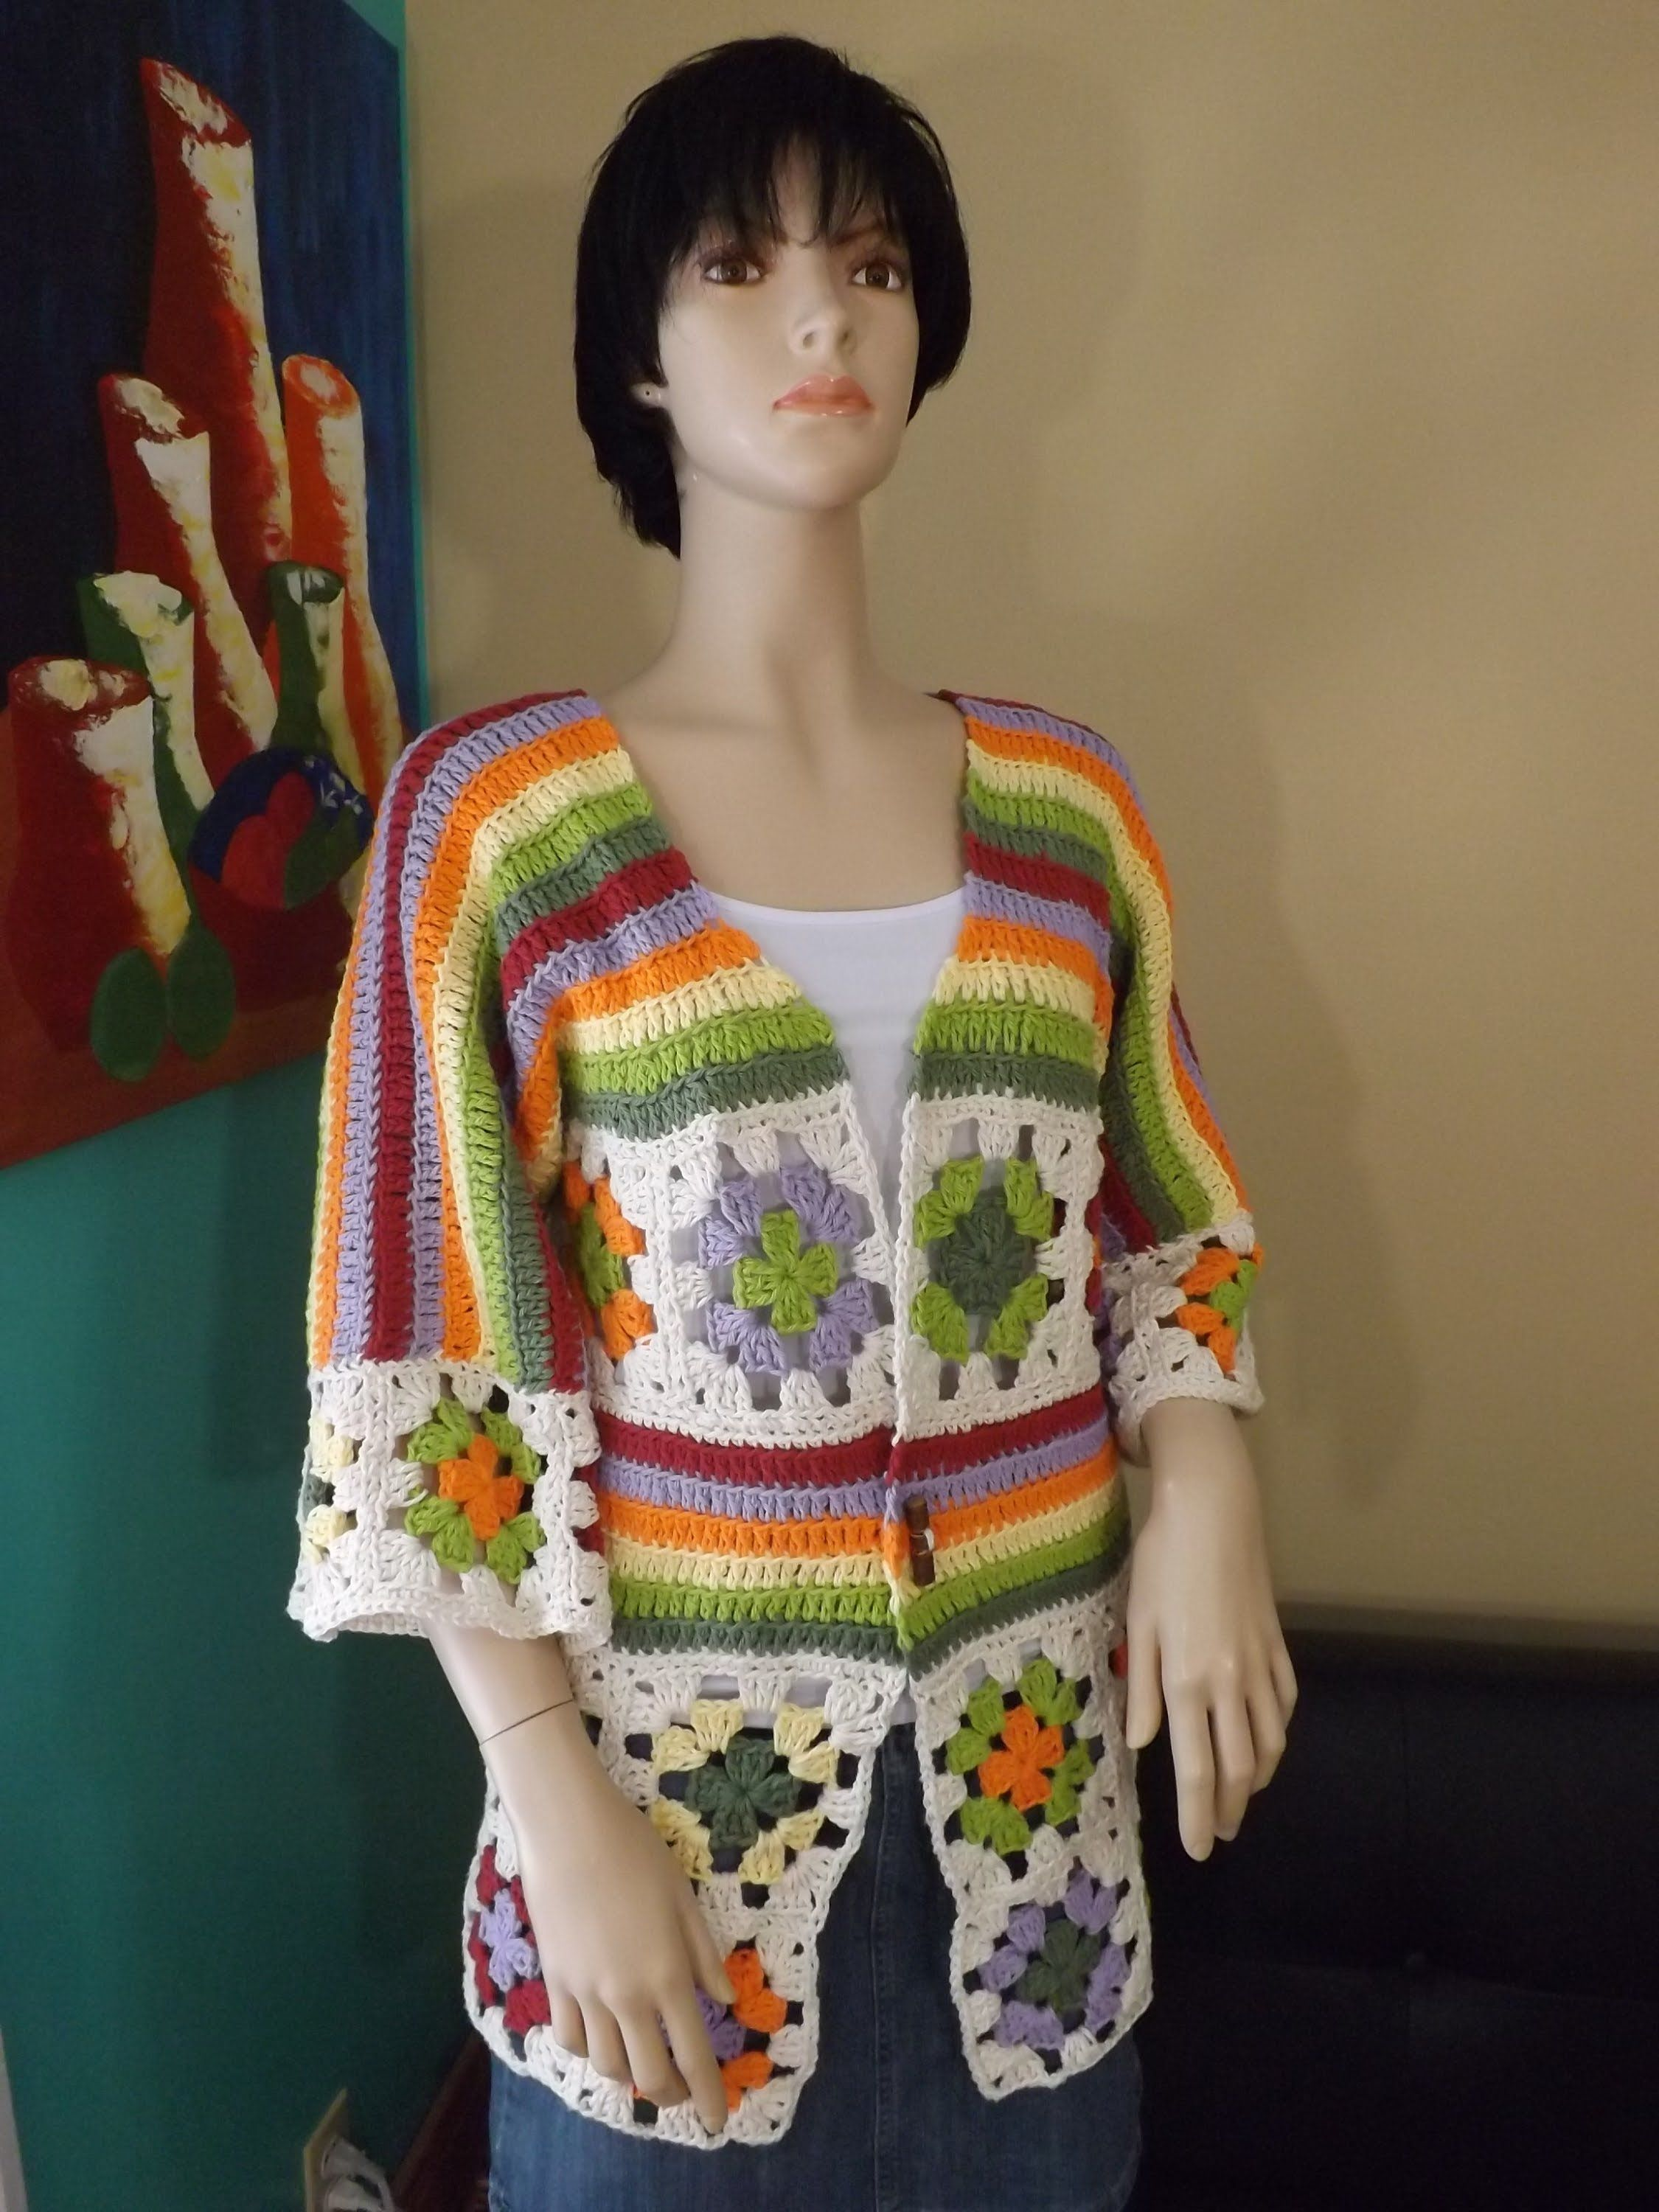 How To Crochet A Granny Square Cardigan Part 1 With Ruby Stedman I Trippy Hippy Afghan Pattern Kingdom Would Wear This If It Was All One Colors